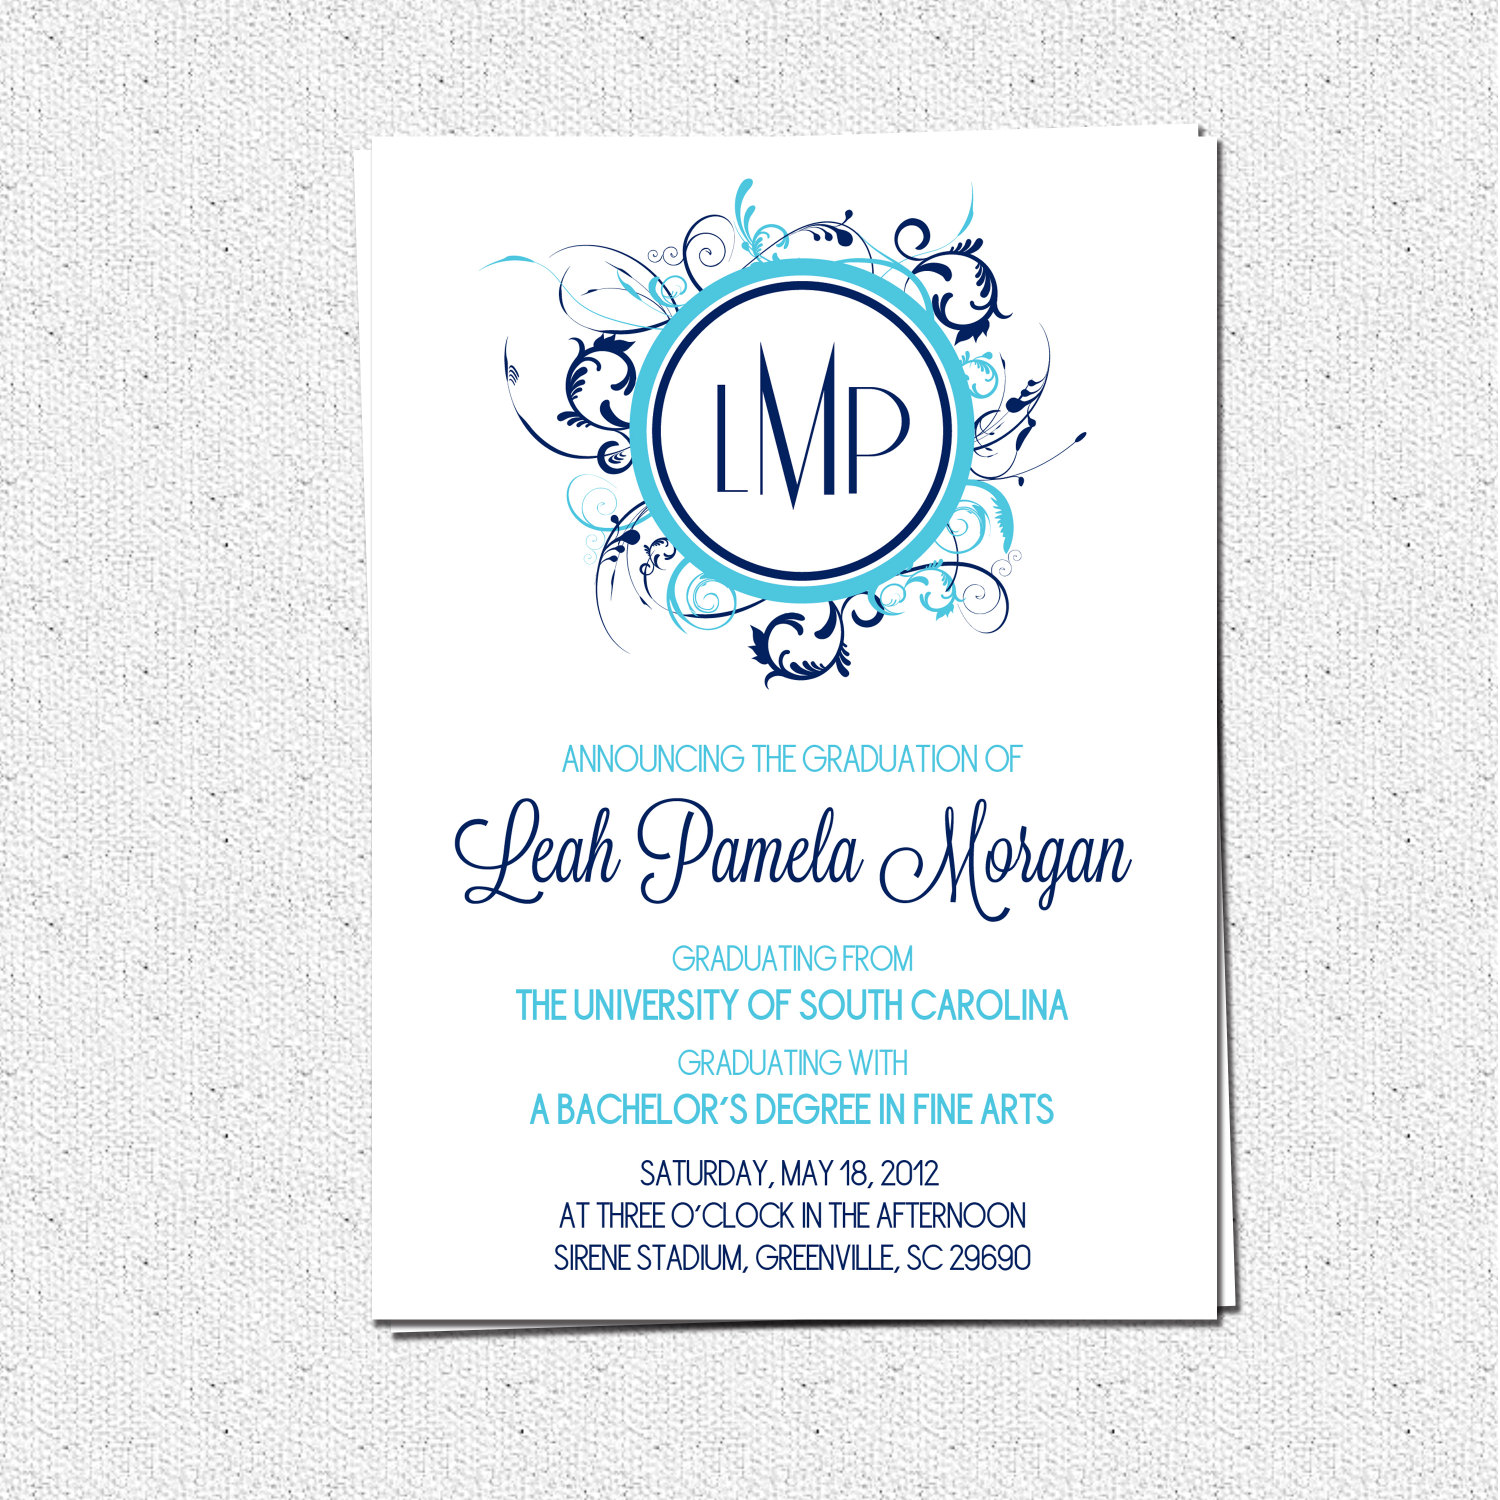 Graduation announcement invitations modern floral monogram girl il fullxfull442632464 t7a4 original filmwisefo